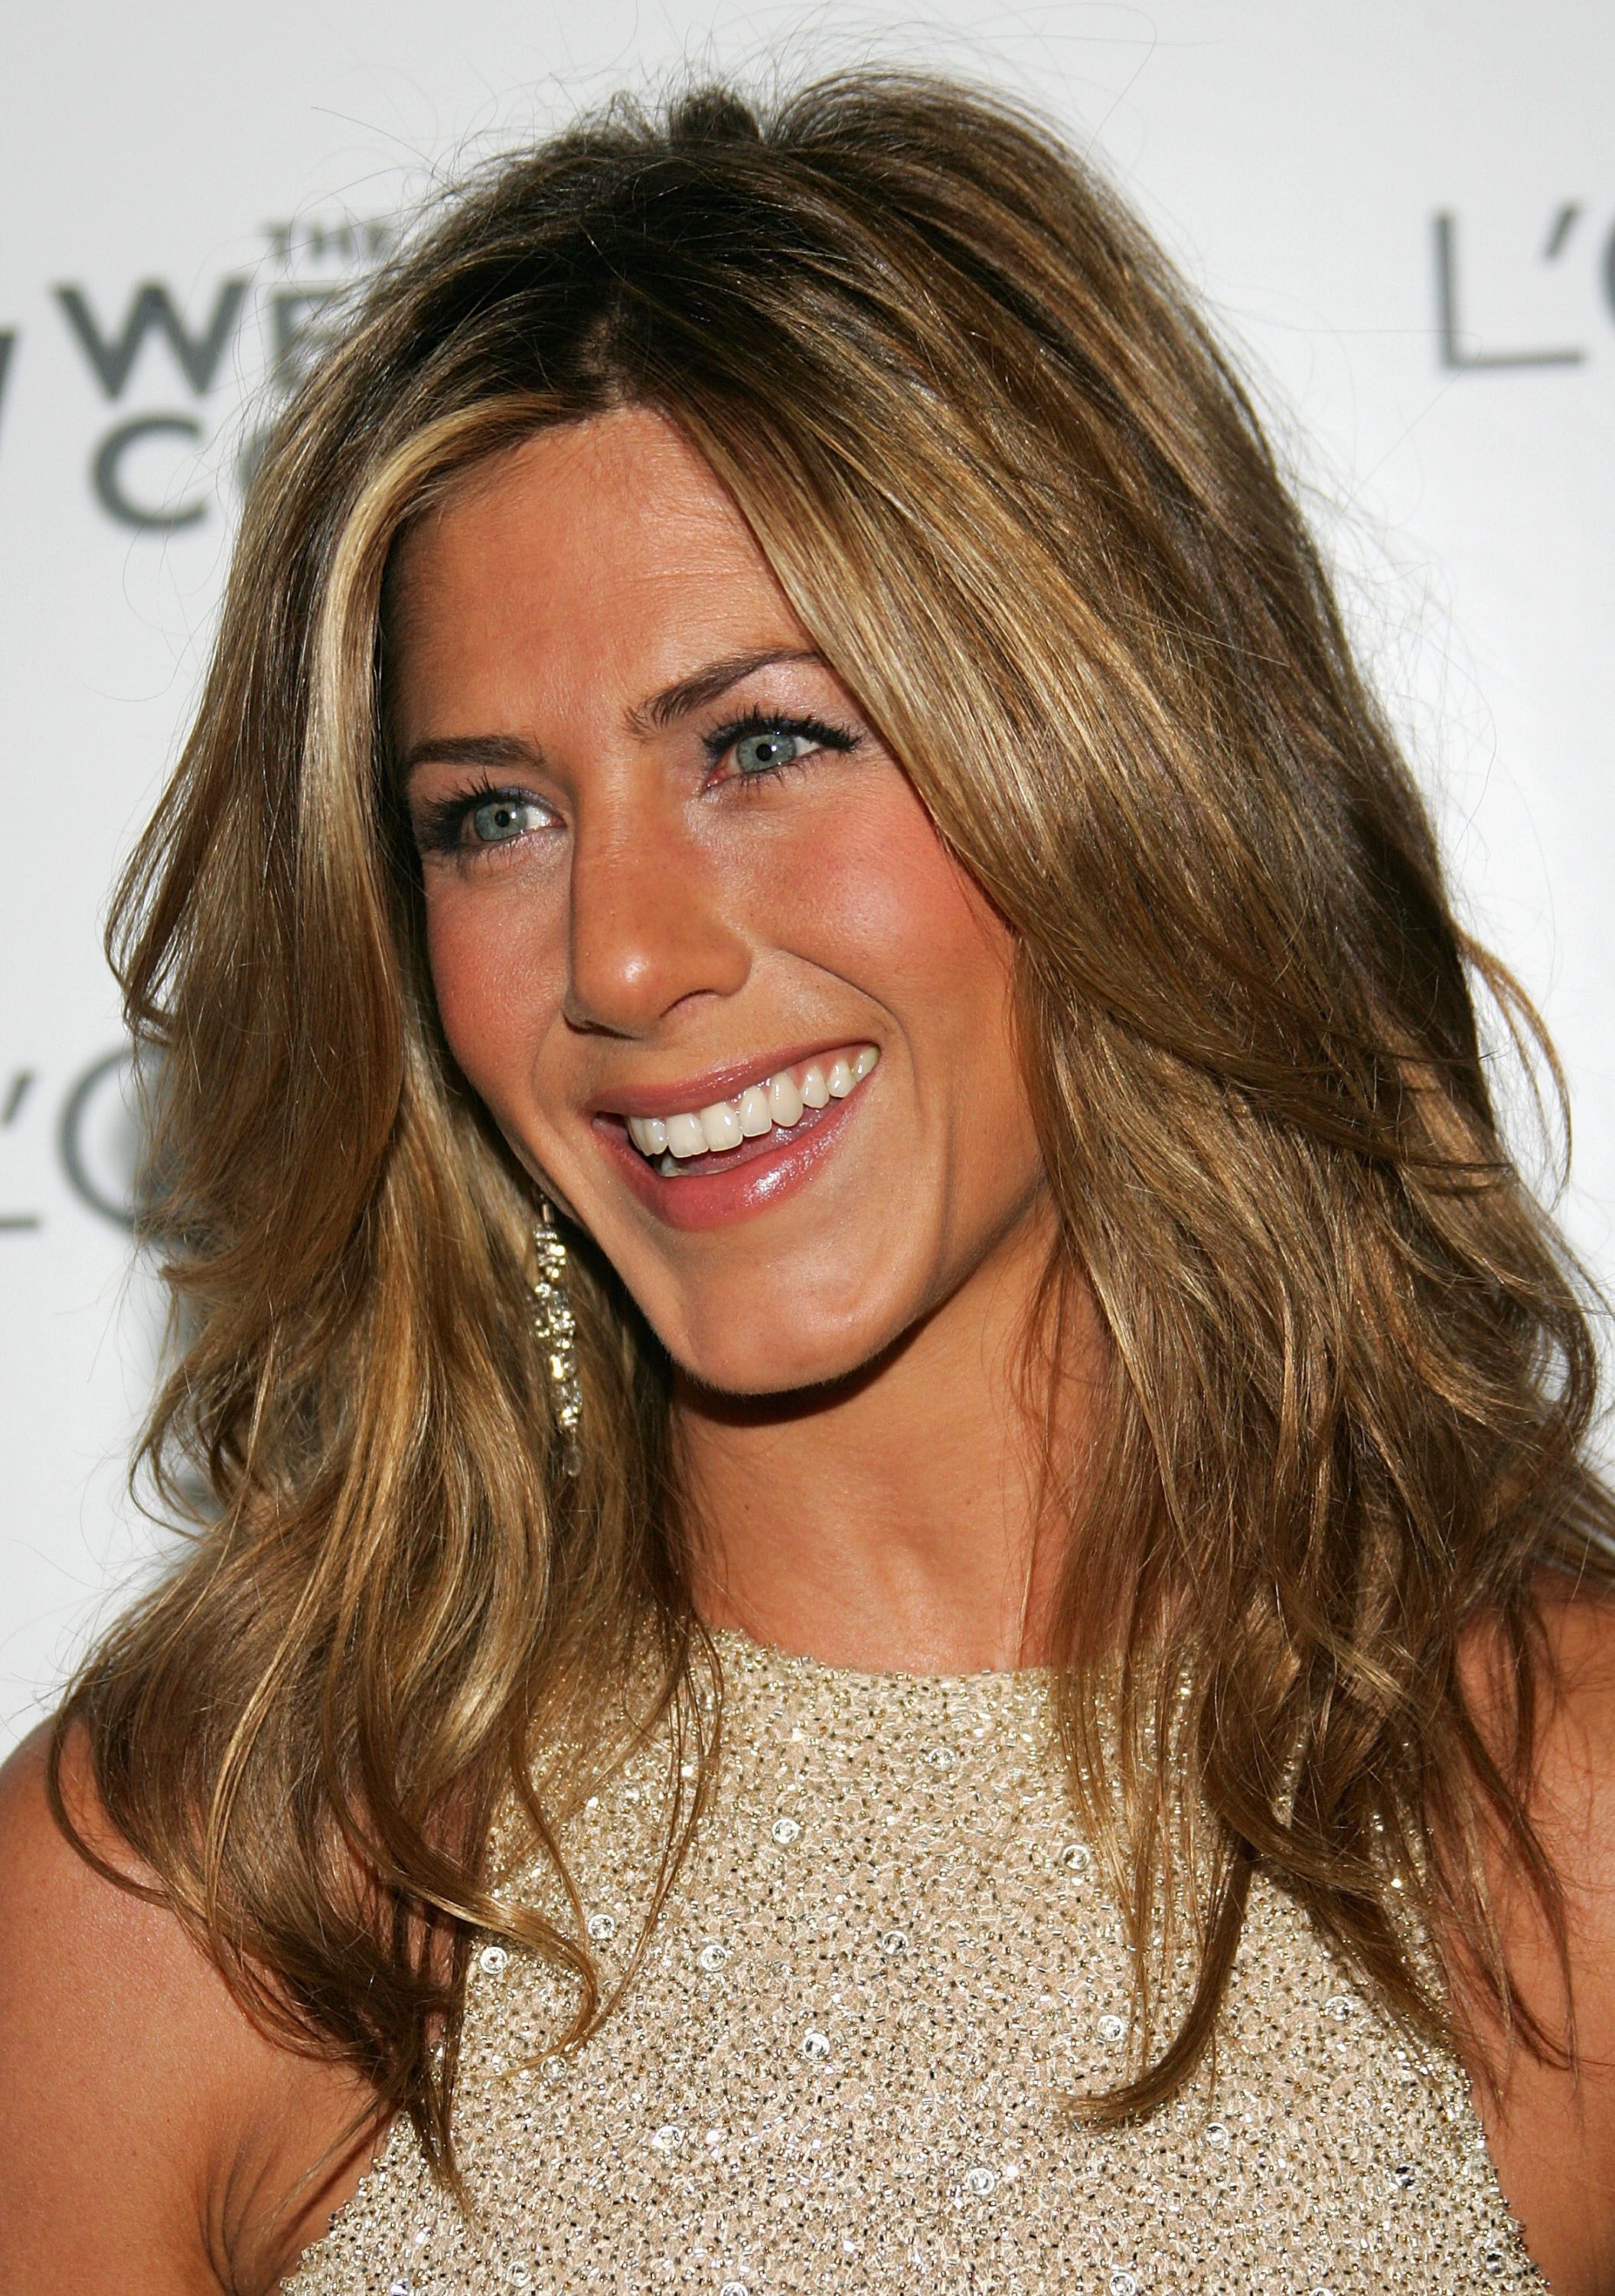 Jennifer Aniston born February 11, 1969 (age 49)